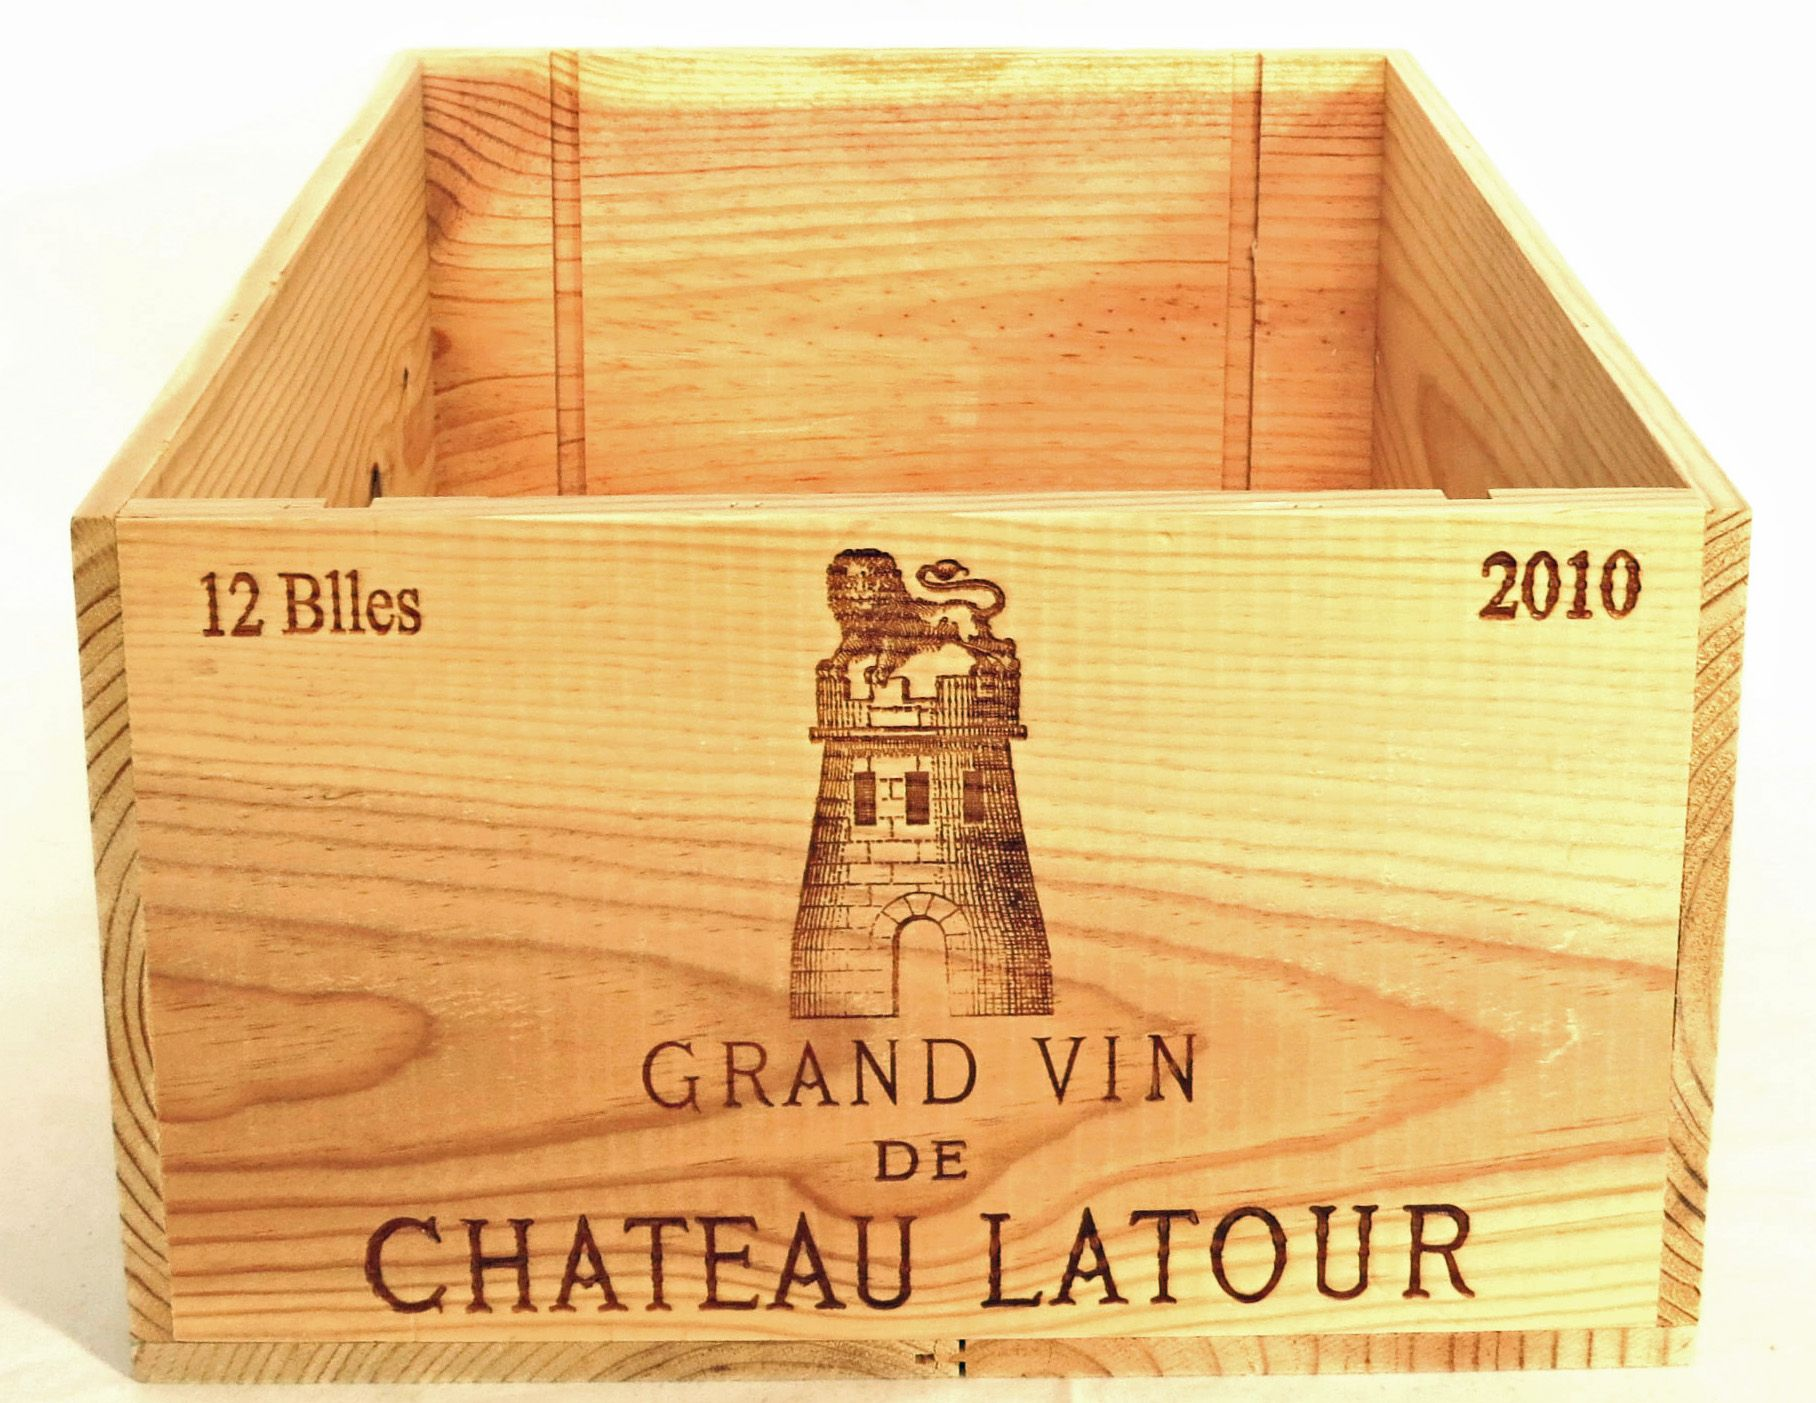 Authentic 2010 chateau latour wooden wine crate without What to do with wine crates